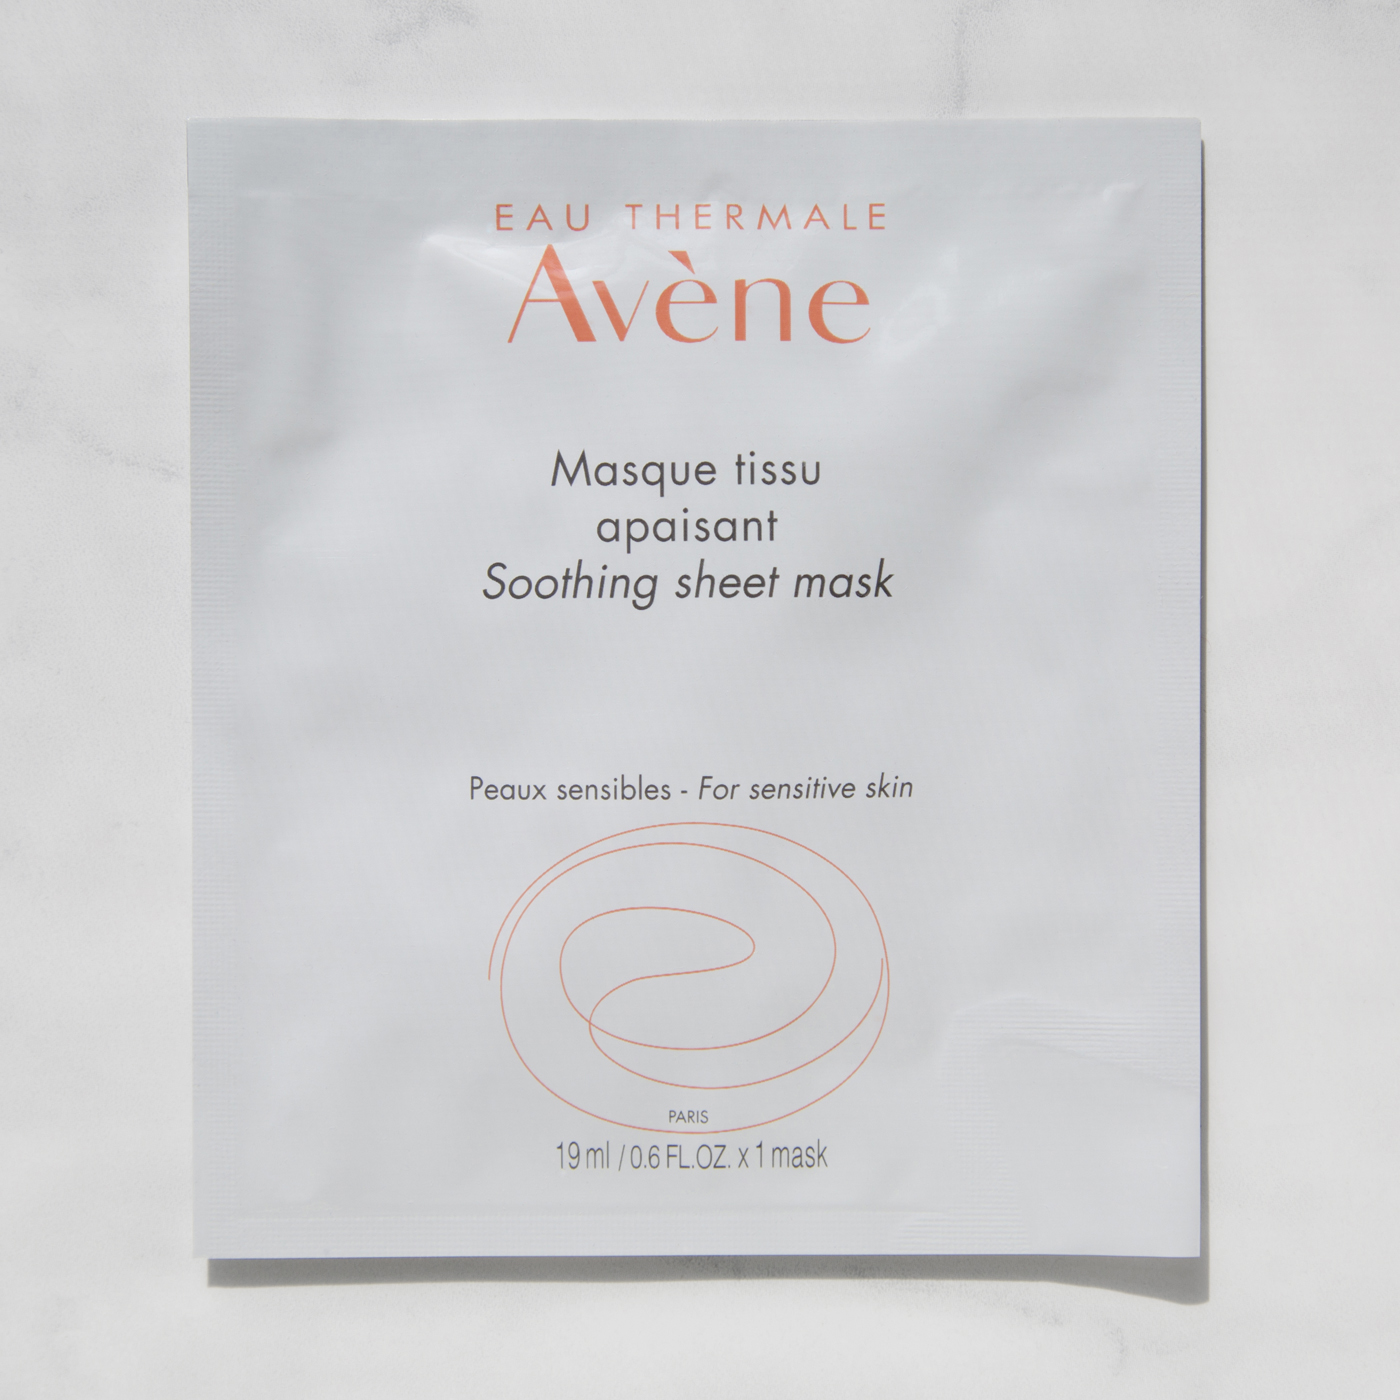 """Avène Eau Thermale Soothing Sheet Mask $9.50 for 1 or $42/5 - My Rating: ☆☆☆Duration: 10 minutesWhat It Is: Soothing sheet mask for extremely sensitive skin that will help with dryness, dehydration and puffiness and is suitable for all skin types.Performance: I judge with my nose first and even though this doesn't have any added fragrance it had a strong smell to me which I did not enjoy. I don't have a large head/face and this mask didn't cover my entire forehead which I found a bit annoying because I would consider my face to be of average to even slightly small sized. The thing that really takes the rating way down for me is that the directions say to wipe off the excess serum that is left on your skin afterwards which is a bit disappointing because it doesn't feel """"worth it"""" when you can't leave the serum on and continue reaping the benefits. Otherwise I didn't have any negative reaction and my skin did look good afterwards but I just wasn't overly impressed.Would I Recommend: It works fine and if you have very sensitive skin it might be worth checking out but just wasn't my favorite user experience. I can see how this one might be good though for skin prep before an event or photoshoot since you don't have to leave it on long and removing the excess would make sense in those situations.Dermstore Rating: ☆☆☆☆.7"""